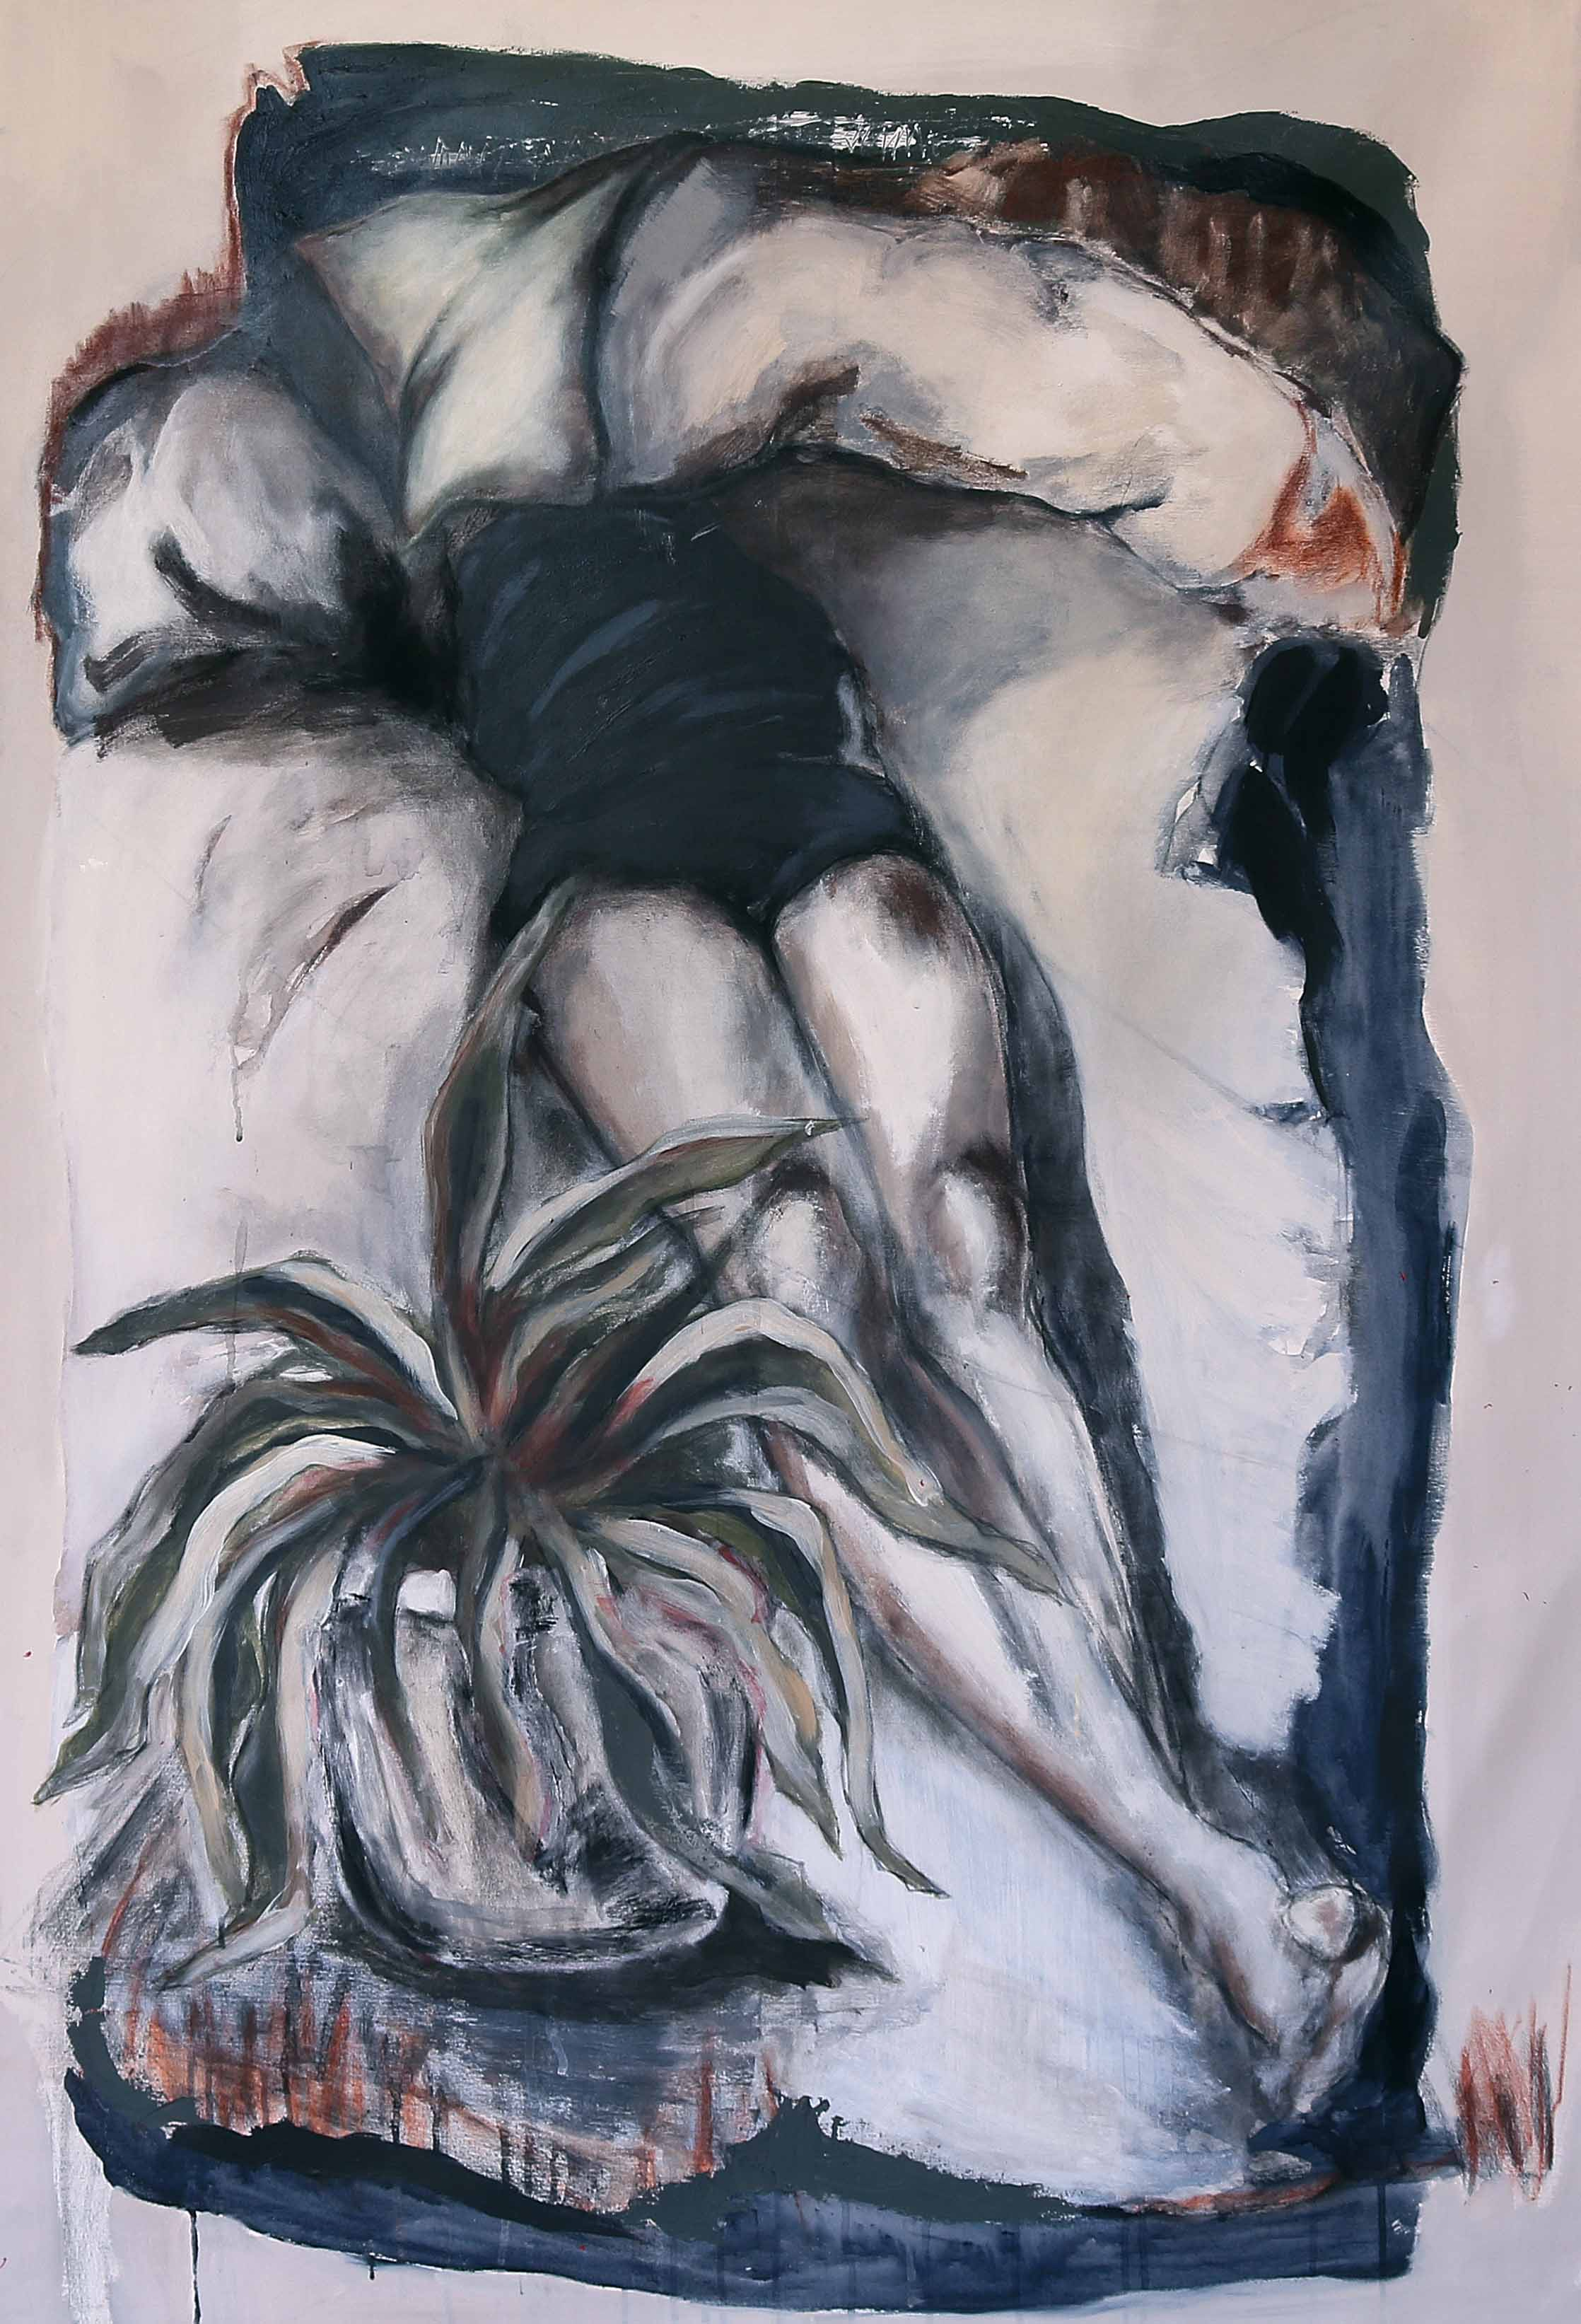 Sleeping Girl, 2016, Acrylic paint on canvas, 150 x 100 cm.